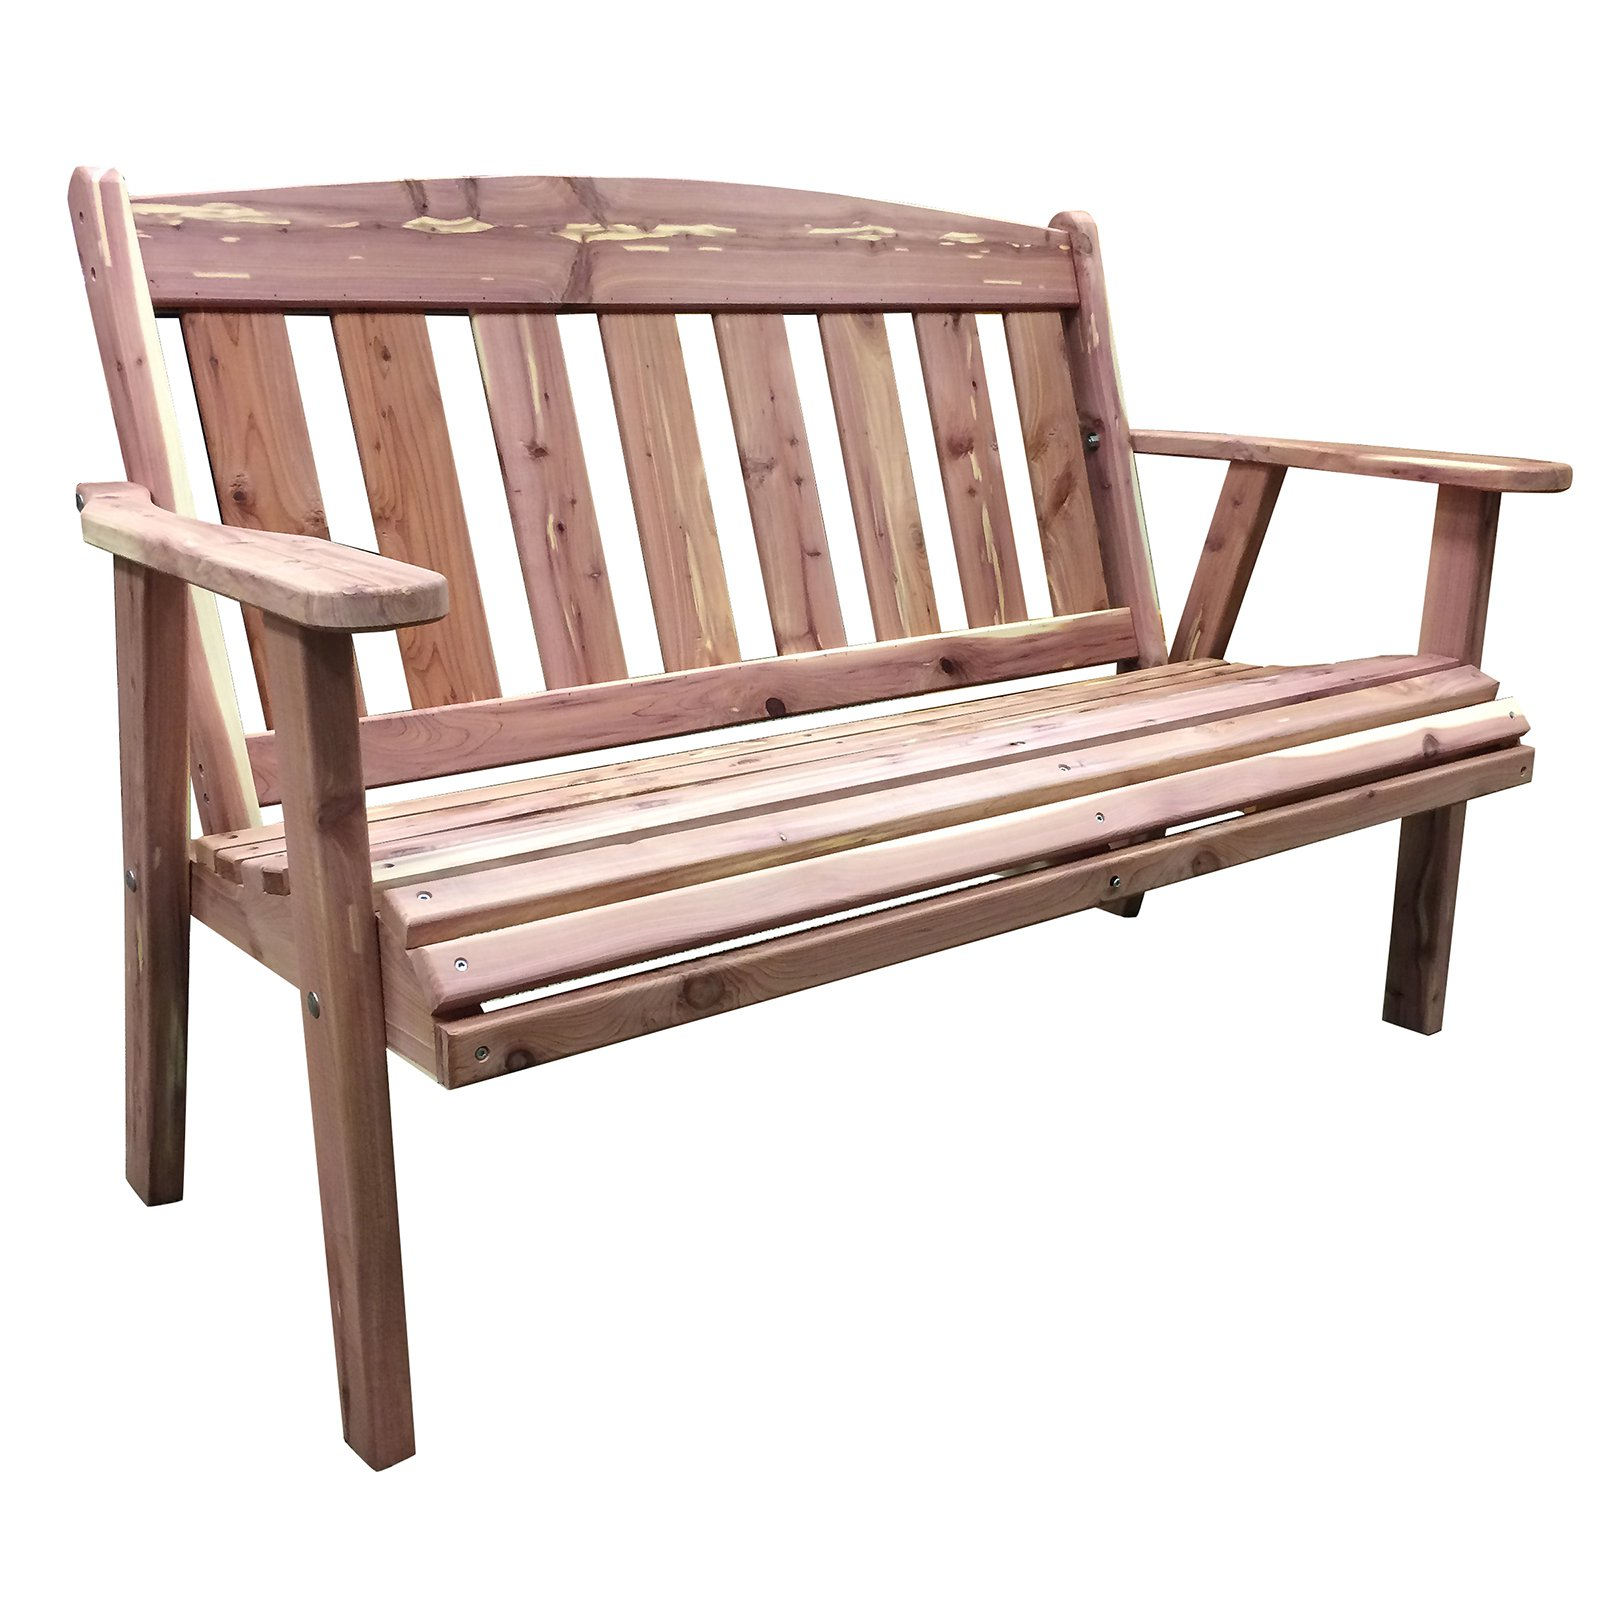 AmeriHome USA Amish Made 52.5 in. Cedar Outdoor Bench